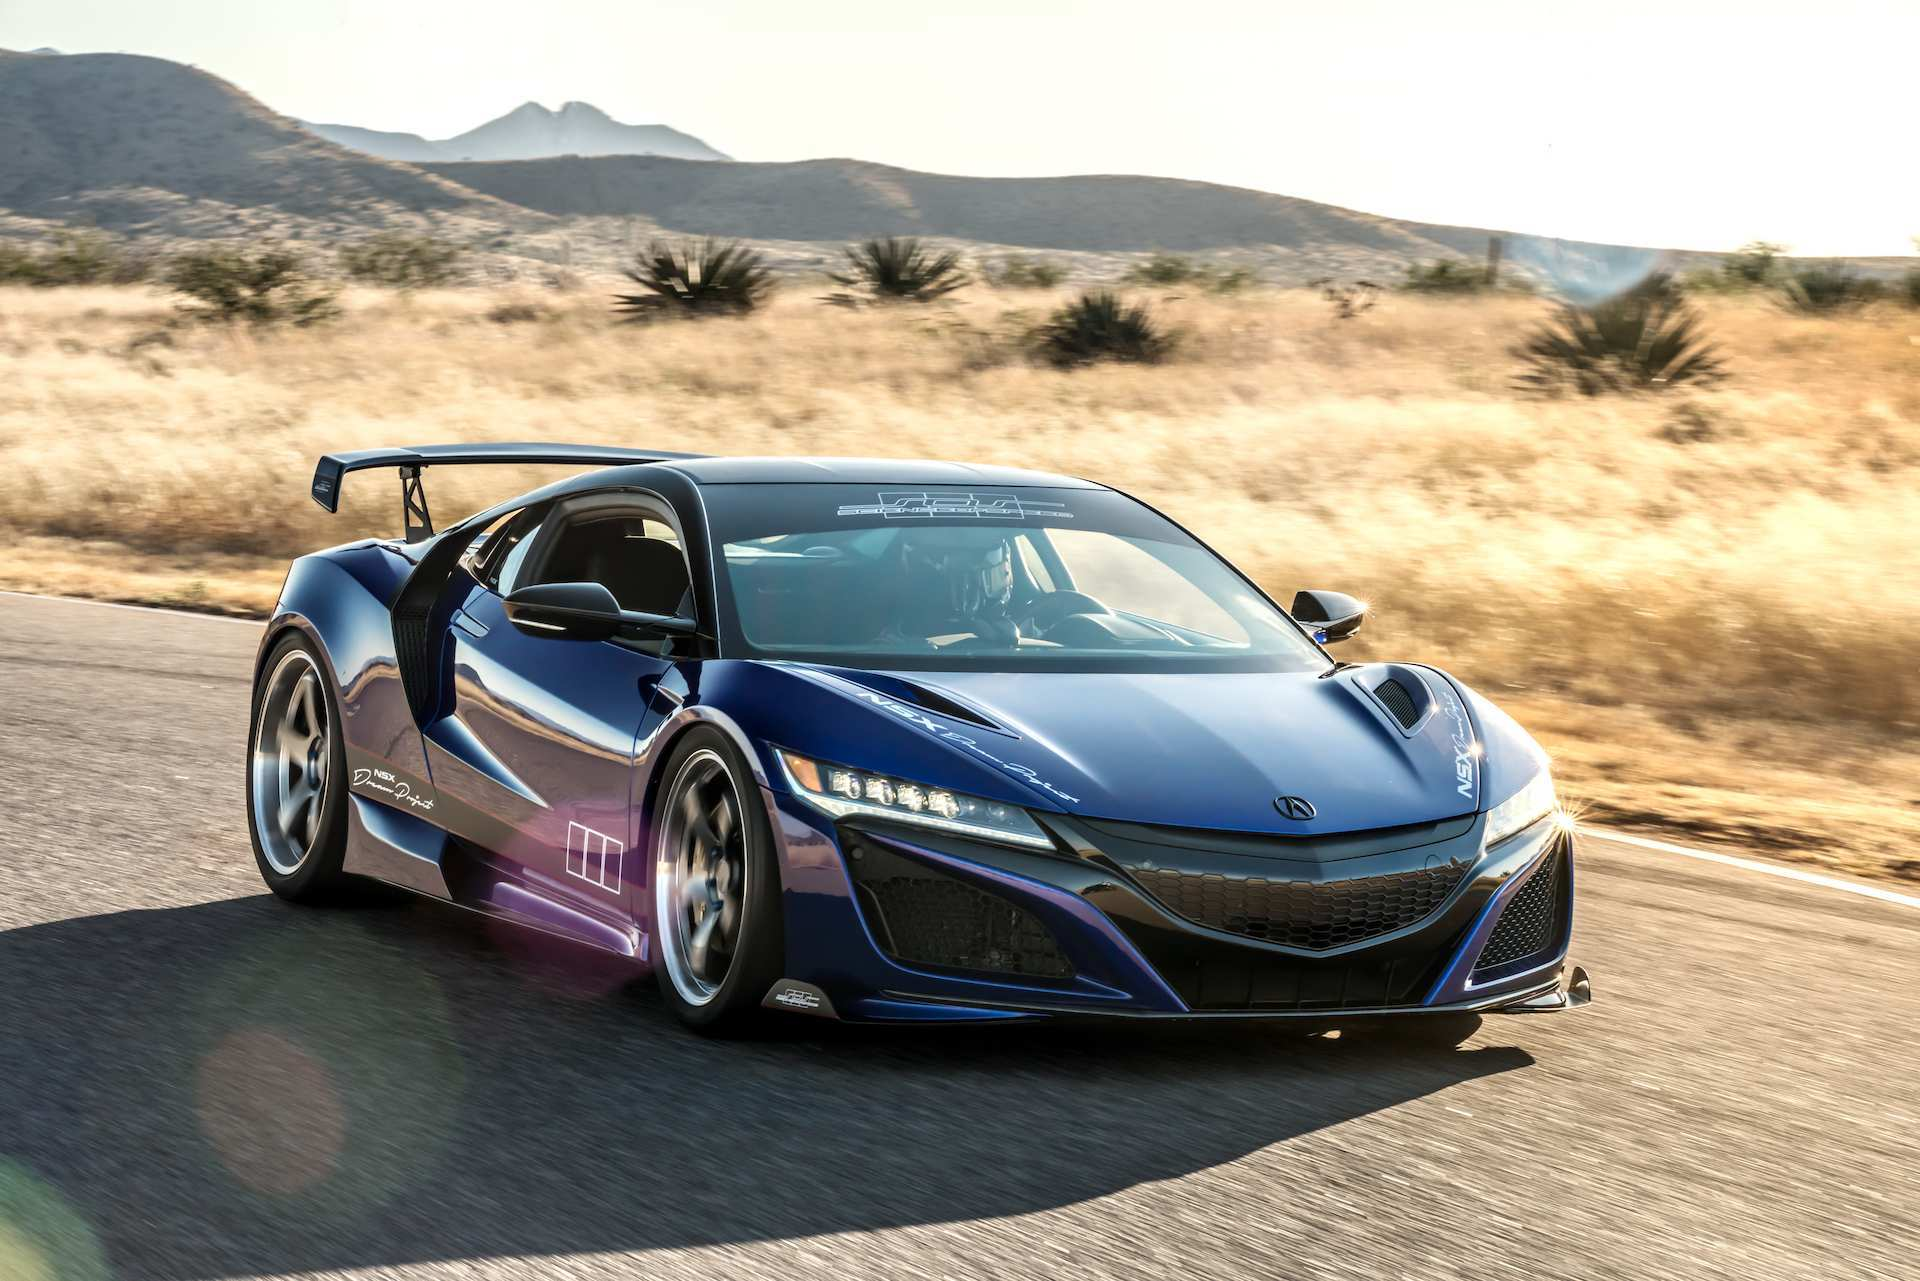 29 New Acura Nsx 2020 Price and Review with Acura Nsx 2020